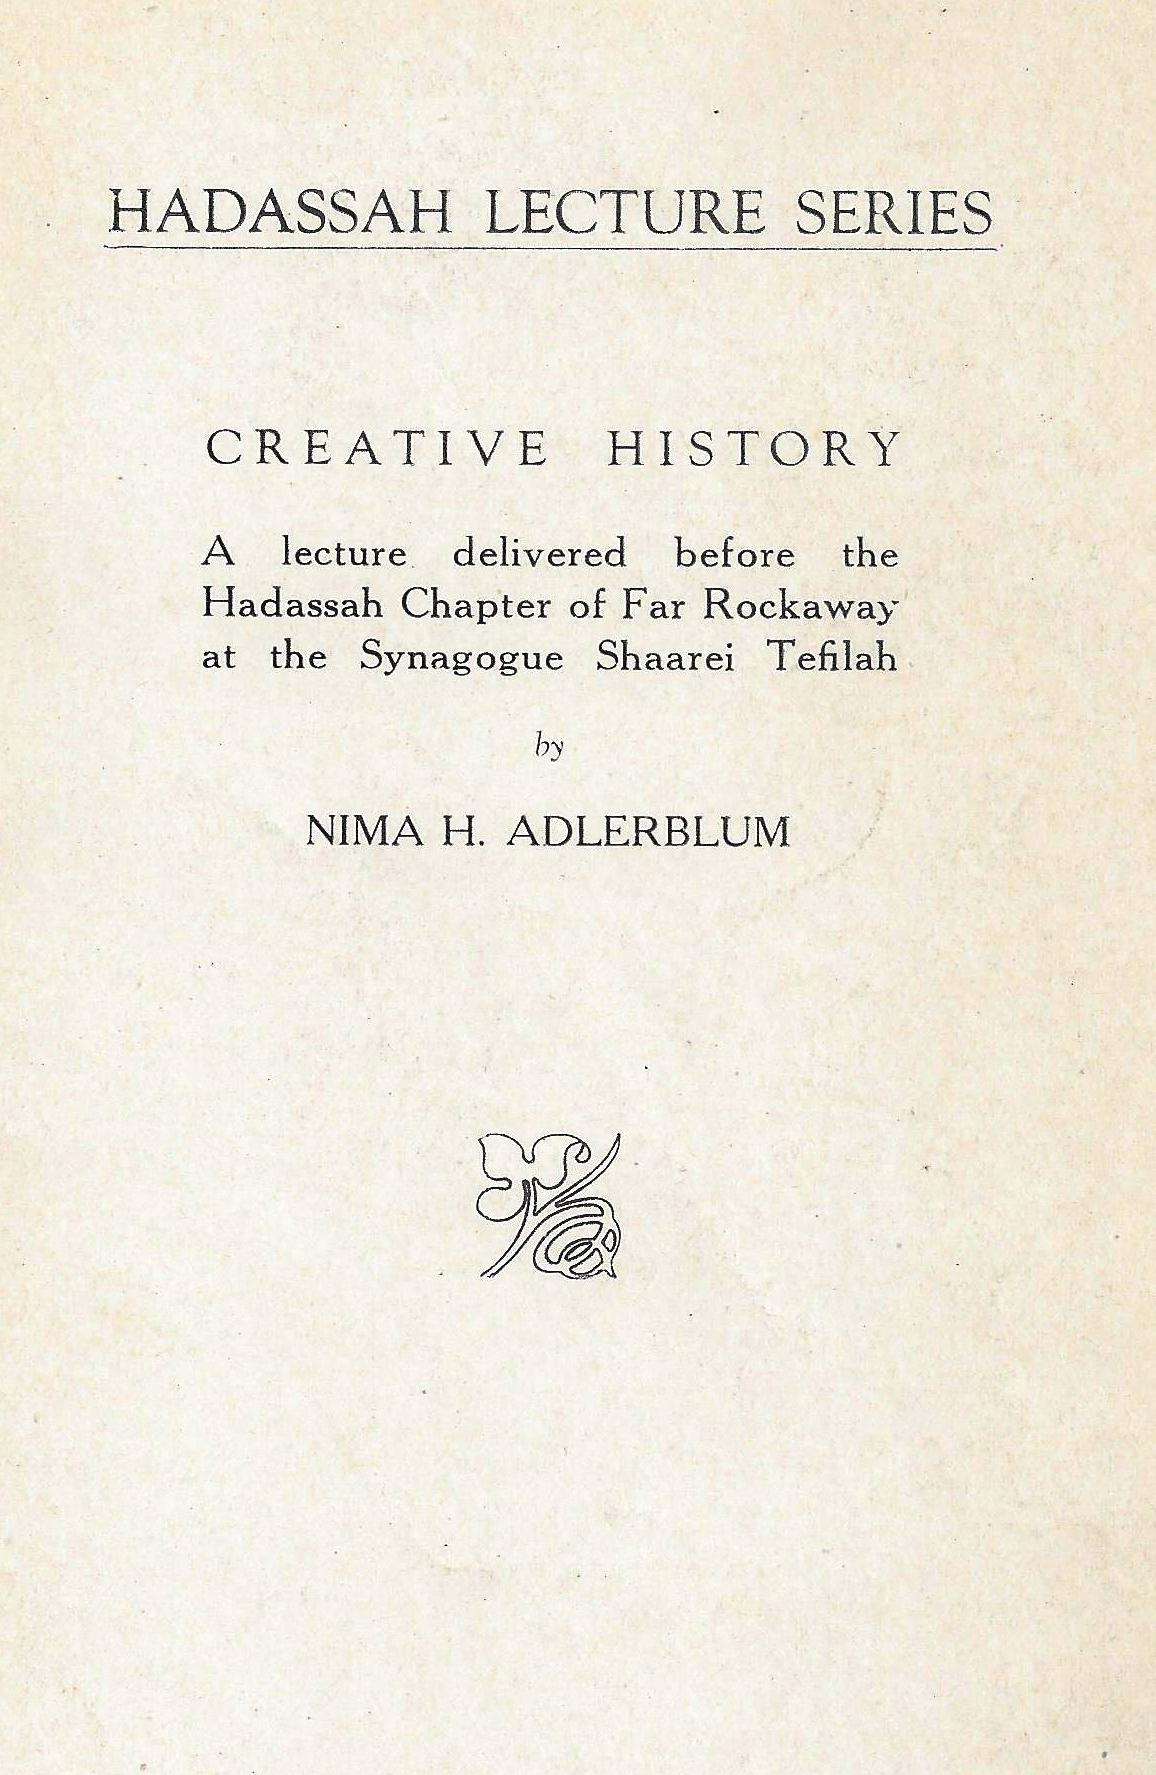 Adlerblum, Nima H. CREATIVE HISTORY. New York: Hadassah, the Women's  Zionist Organization, ca. 1930. 8vo. 16 pages. Part of the Hadassah lecture  series.